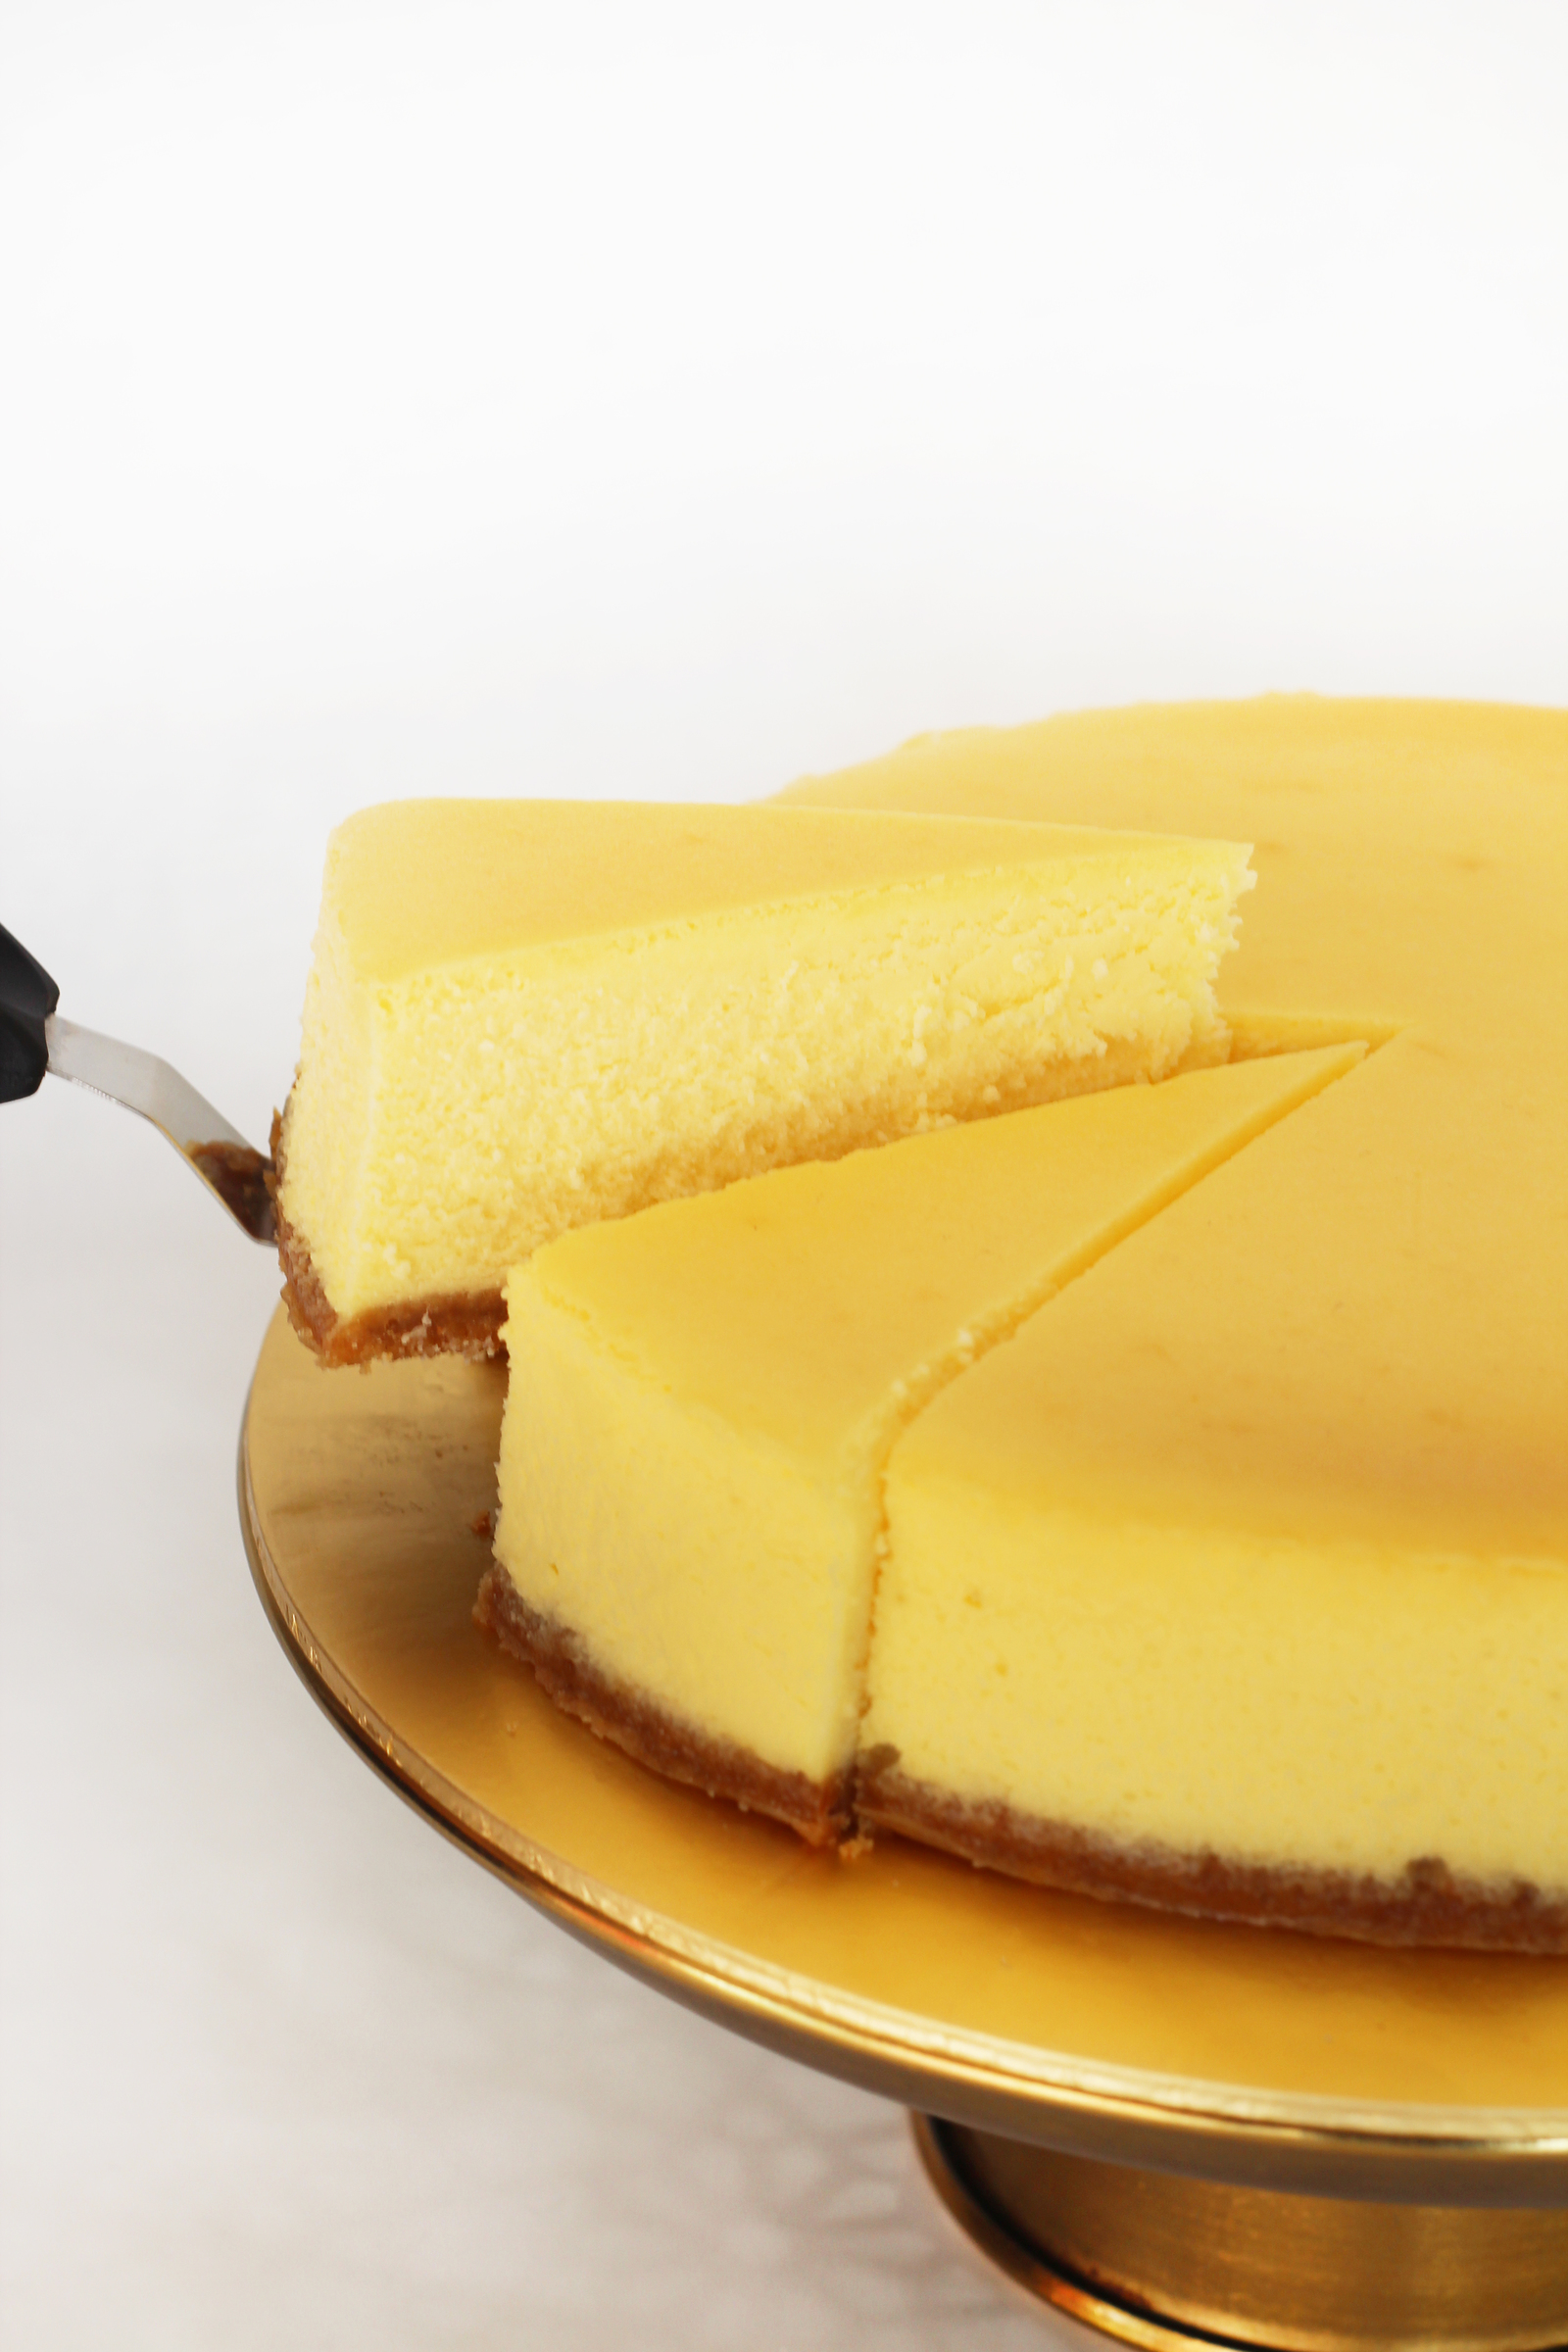 Baked Cheese Cake.jpg